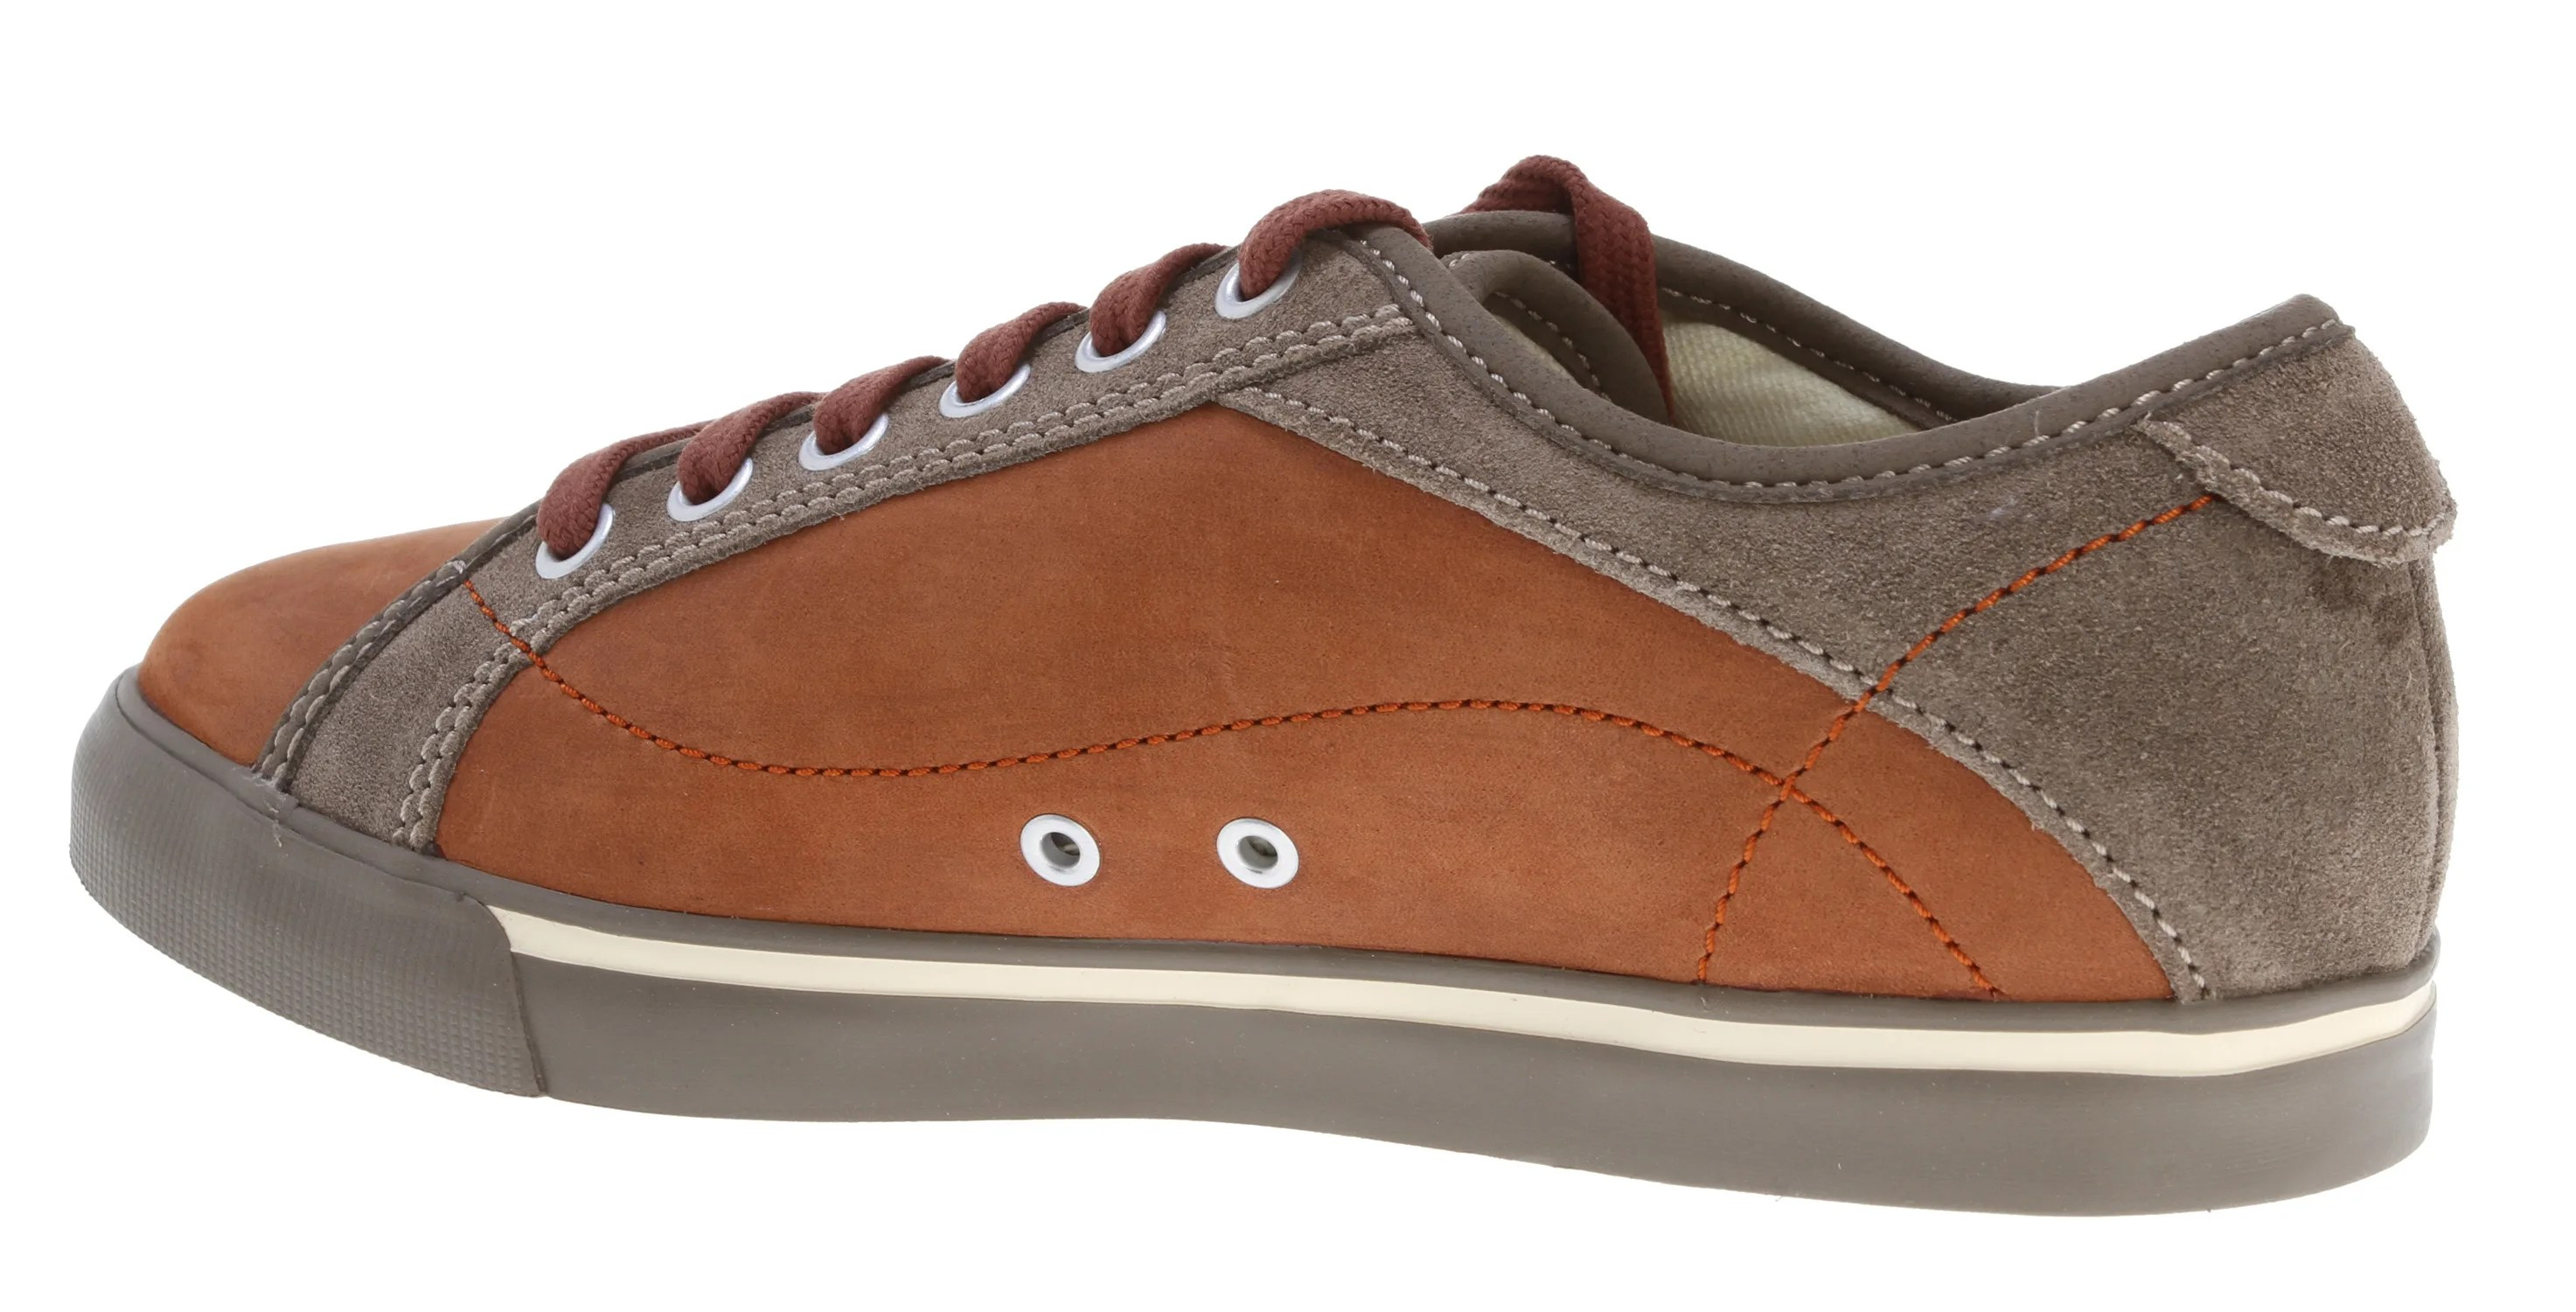 Keen Water Shoes Clearance